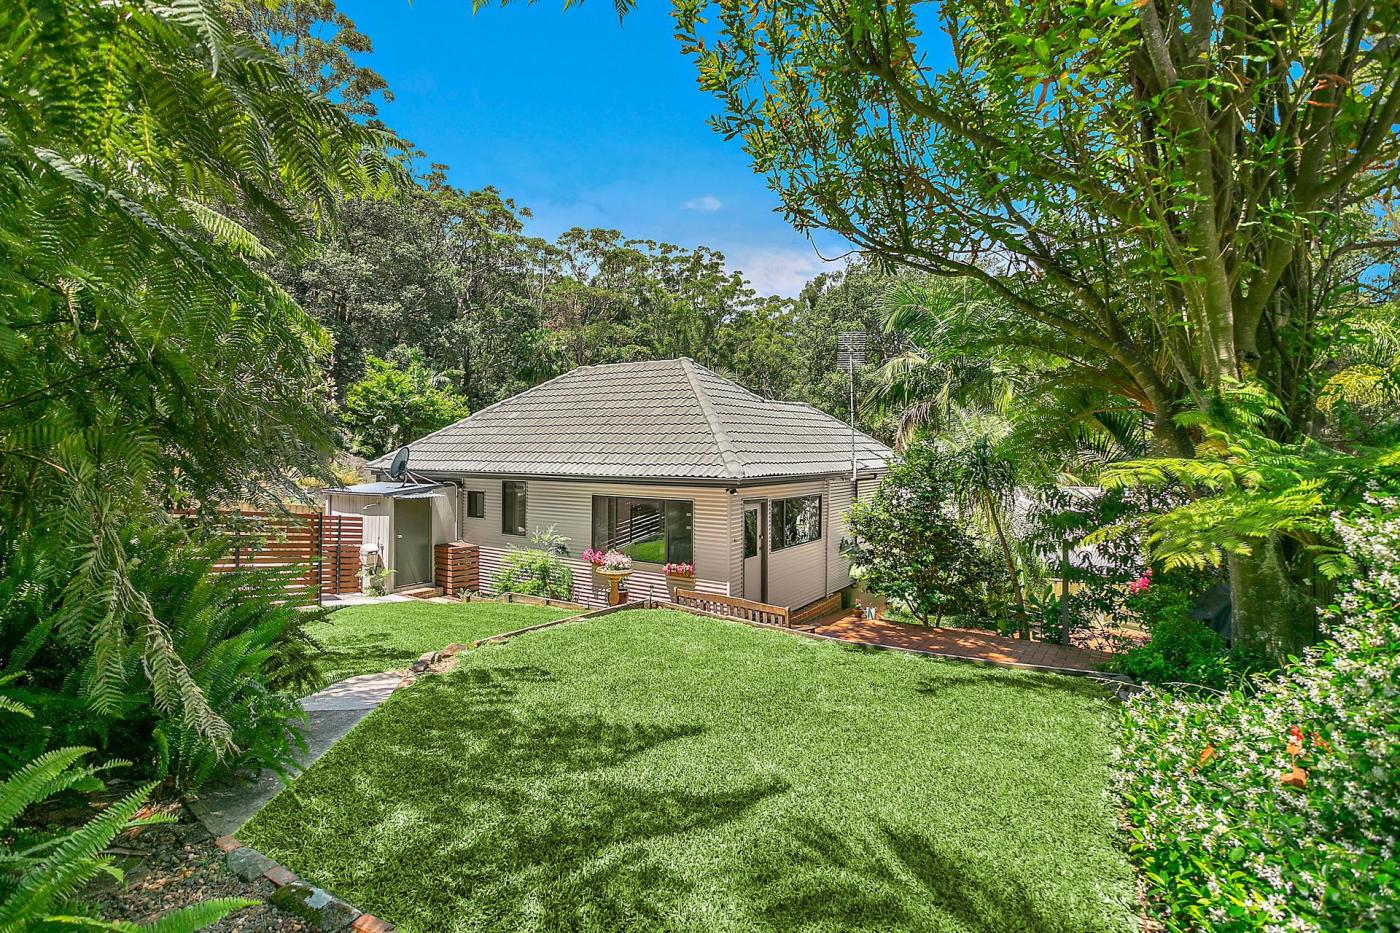 24-old-coast-road-stanwell-park-nsw-2508-real-estate-photo-1-xlarge-12573290